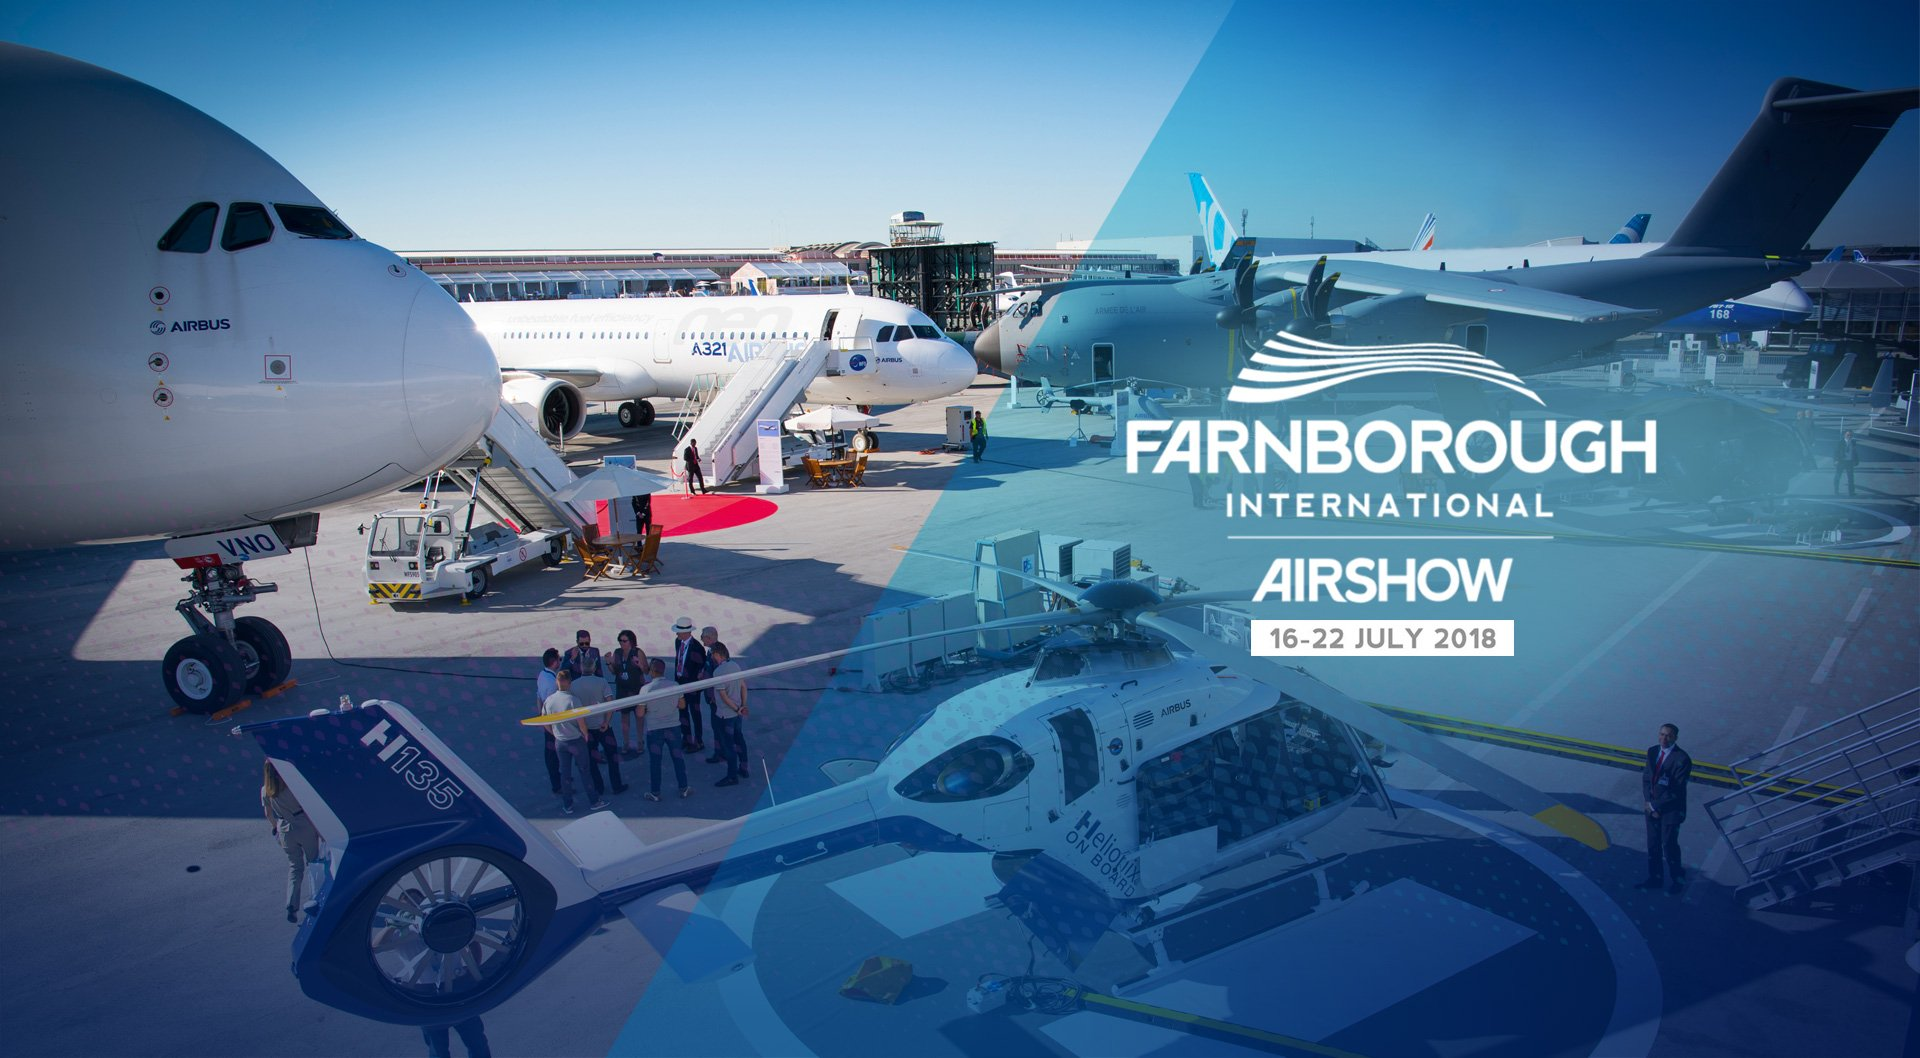 """New season of flight"" at Farnborough airshow"